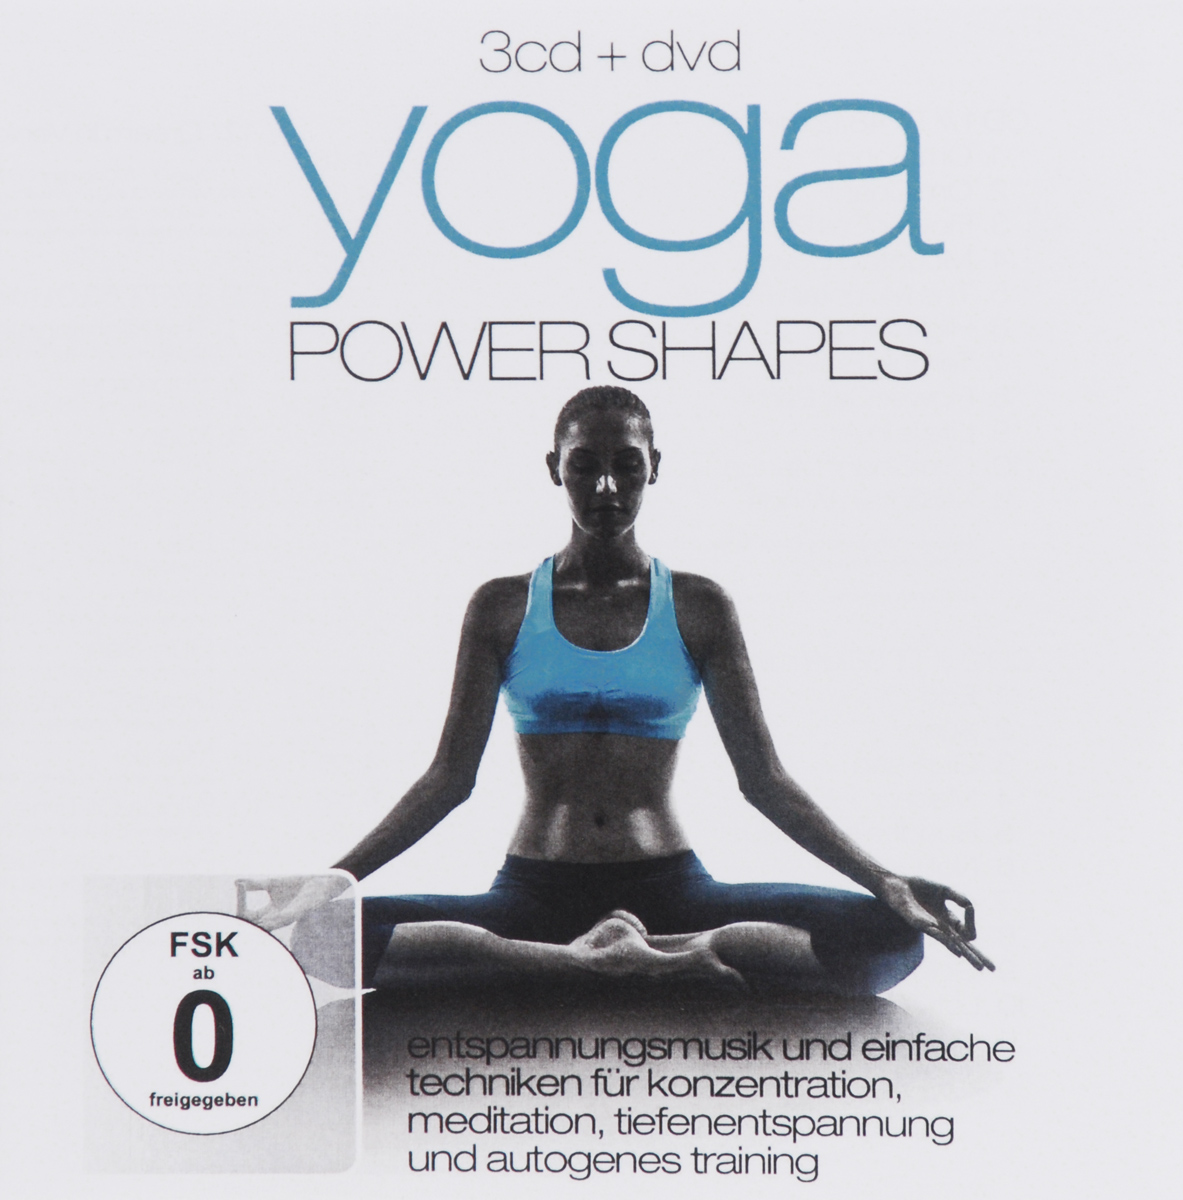 Yoga Power Shapes (3 CD + DVD)